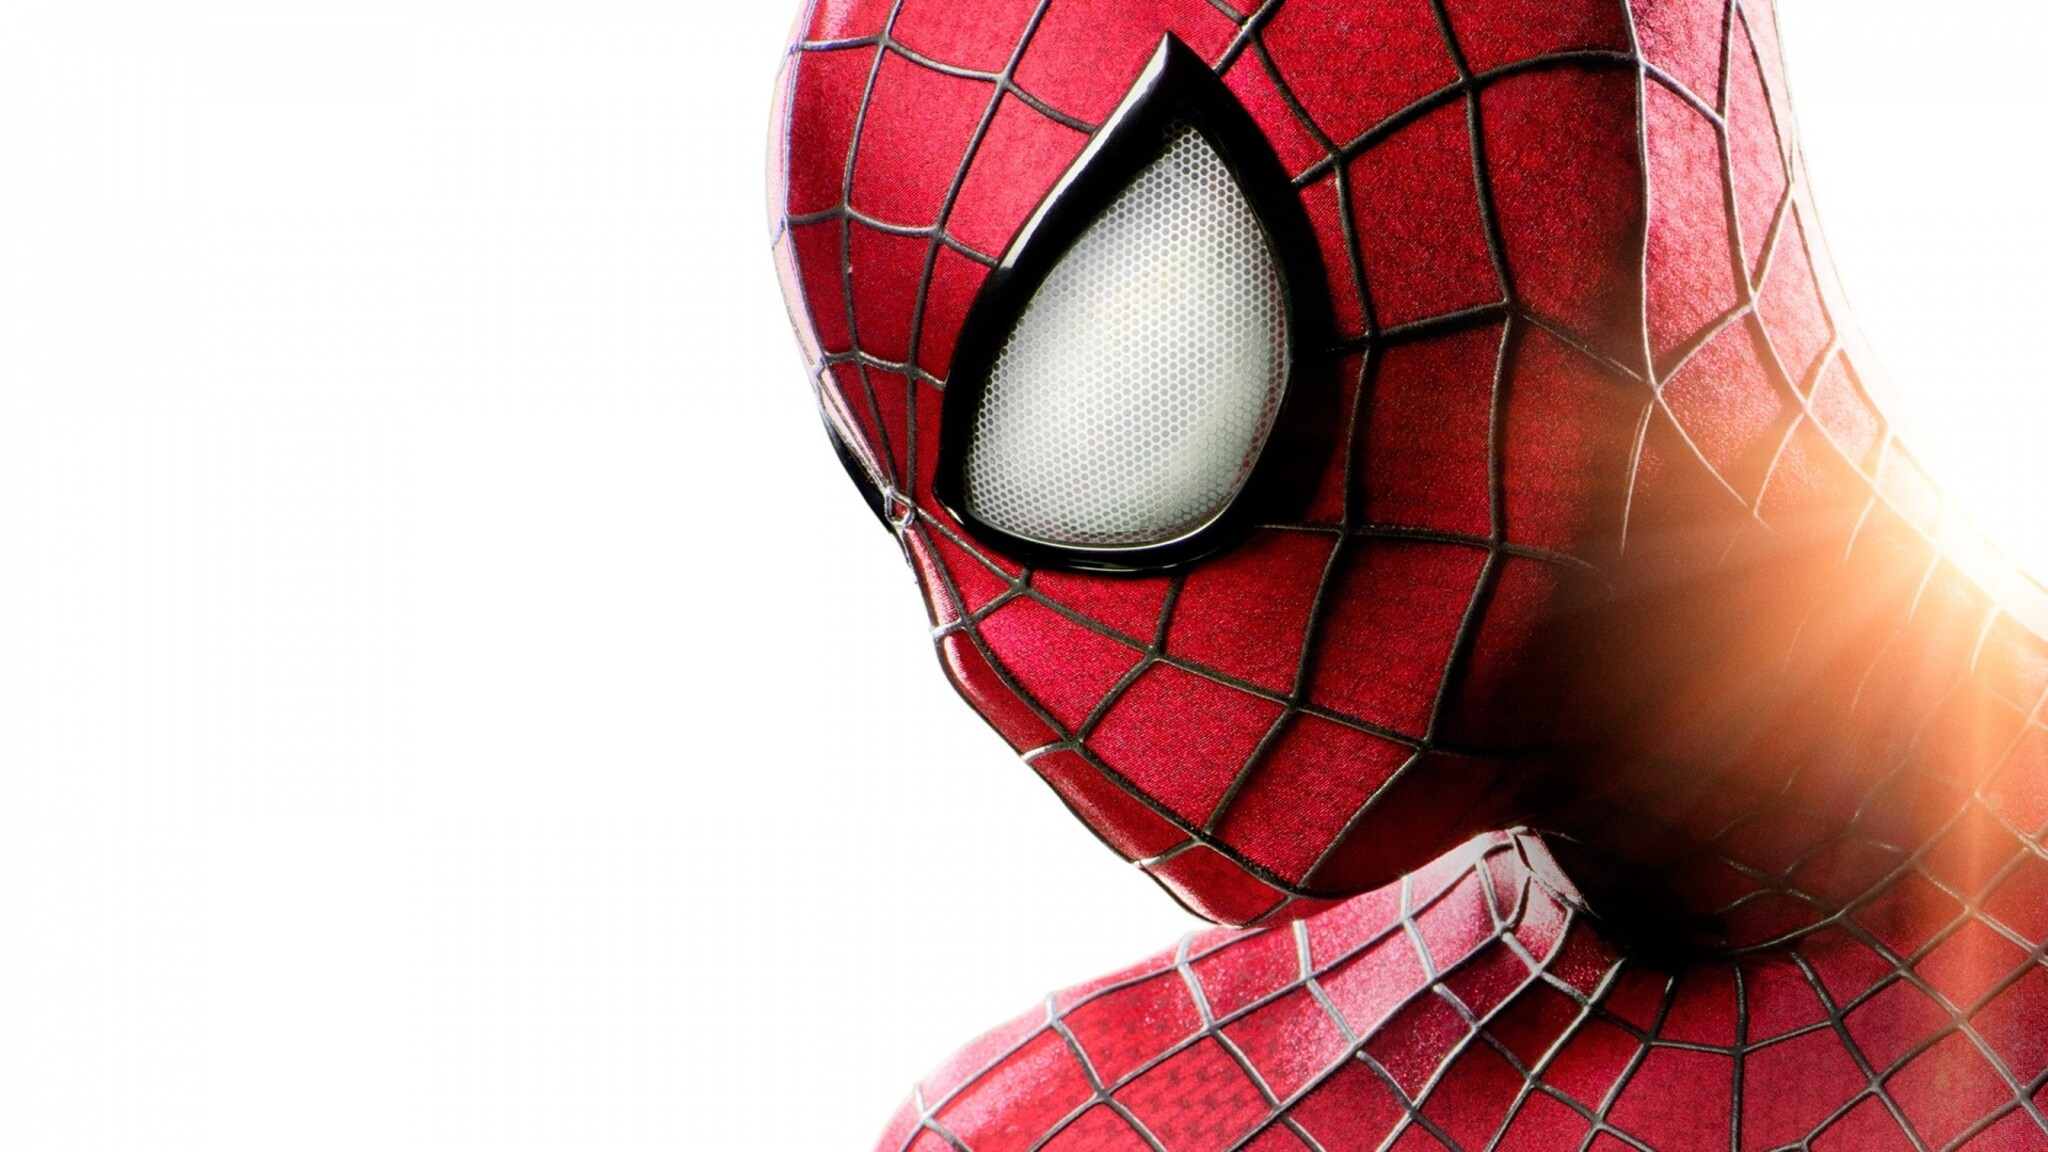 Uncategorized Spiderman Face Pictures 2048x1152 spiderman face resolution hd 4k wallpapers wallpaper jpg